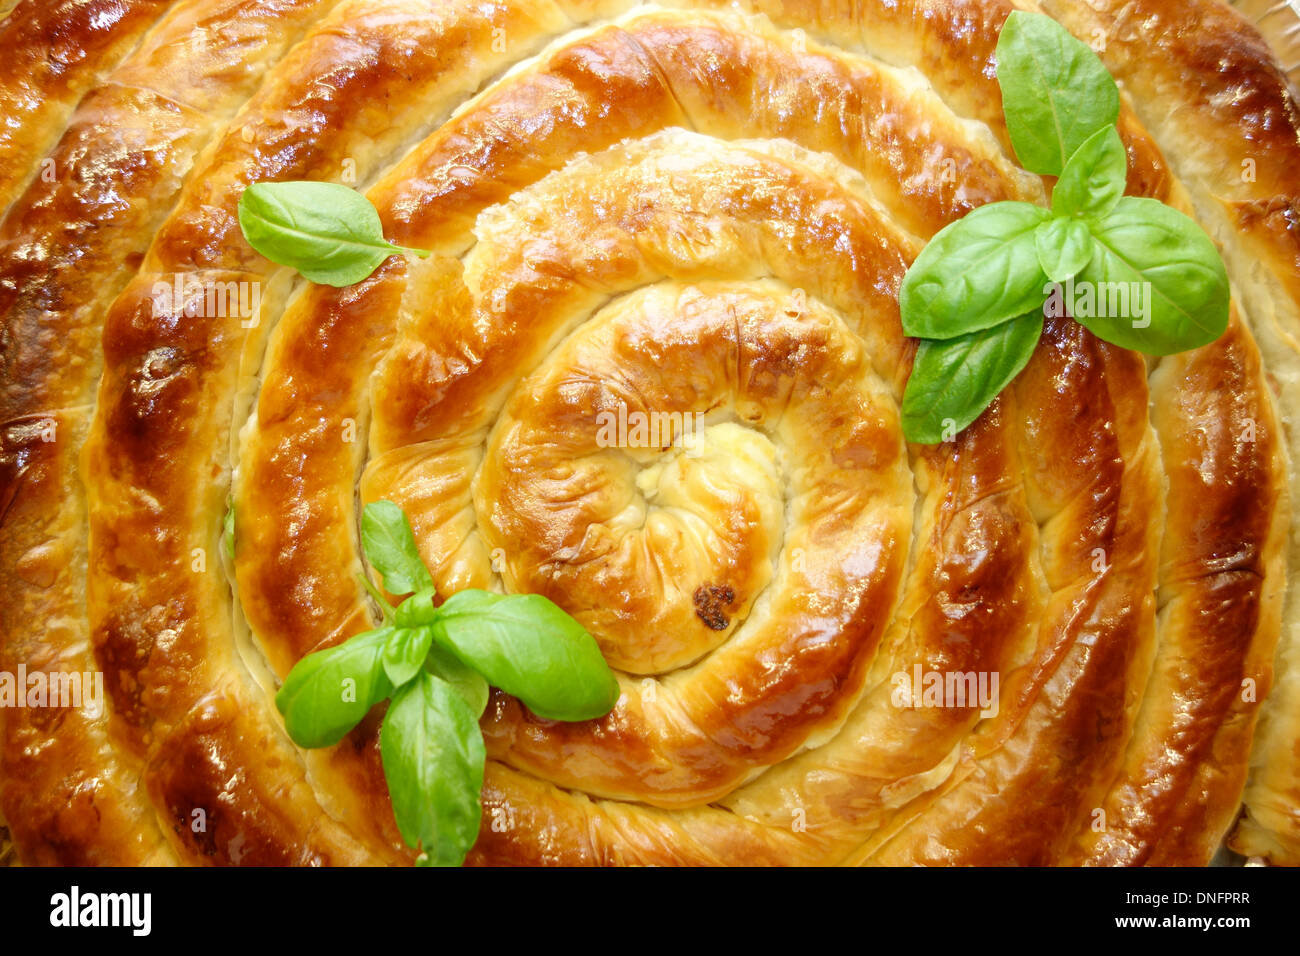 Traditional swirl shaped Balkan pie garnished with fresh basil. - Stock Image